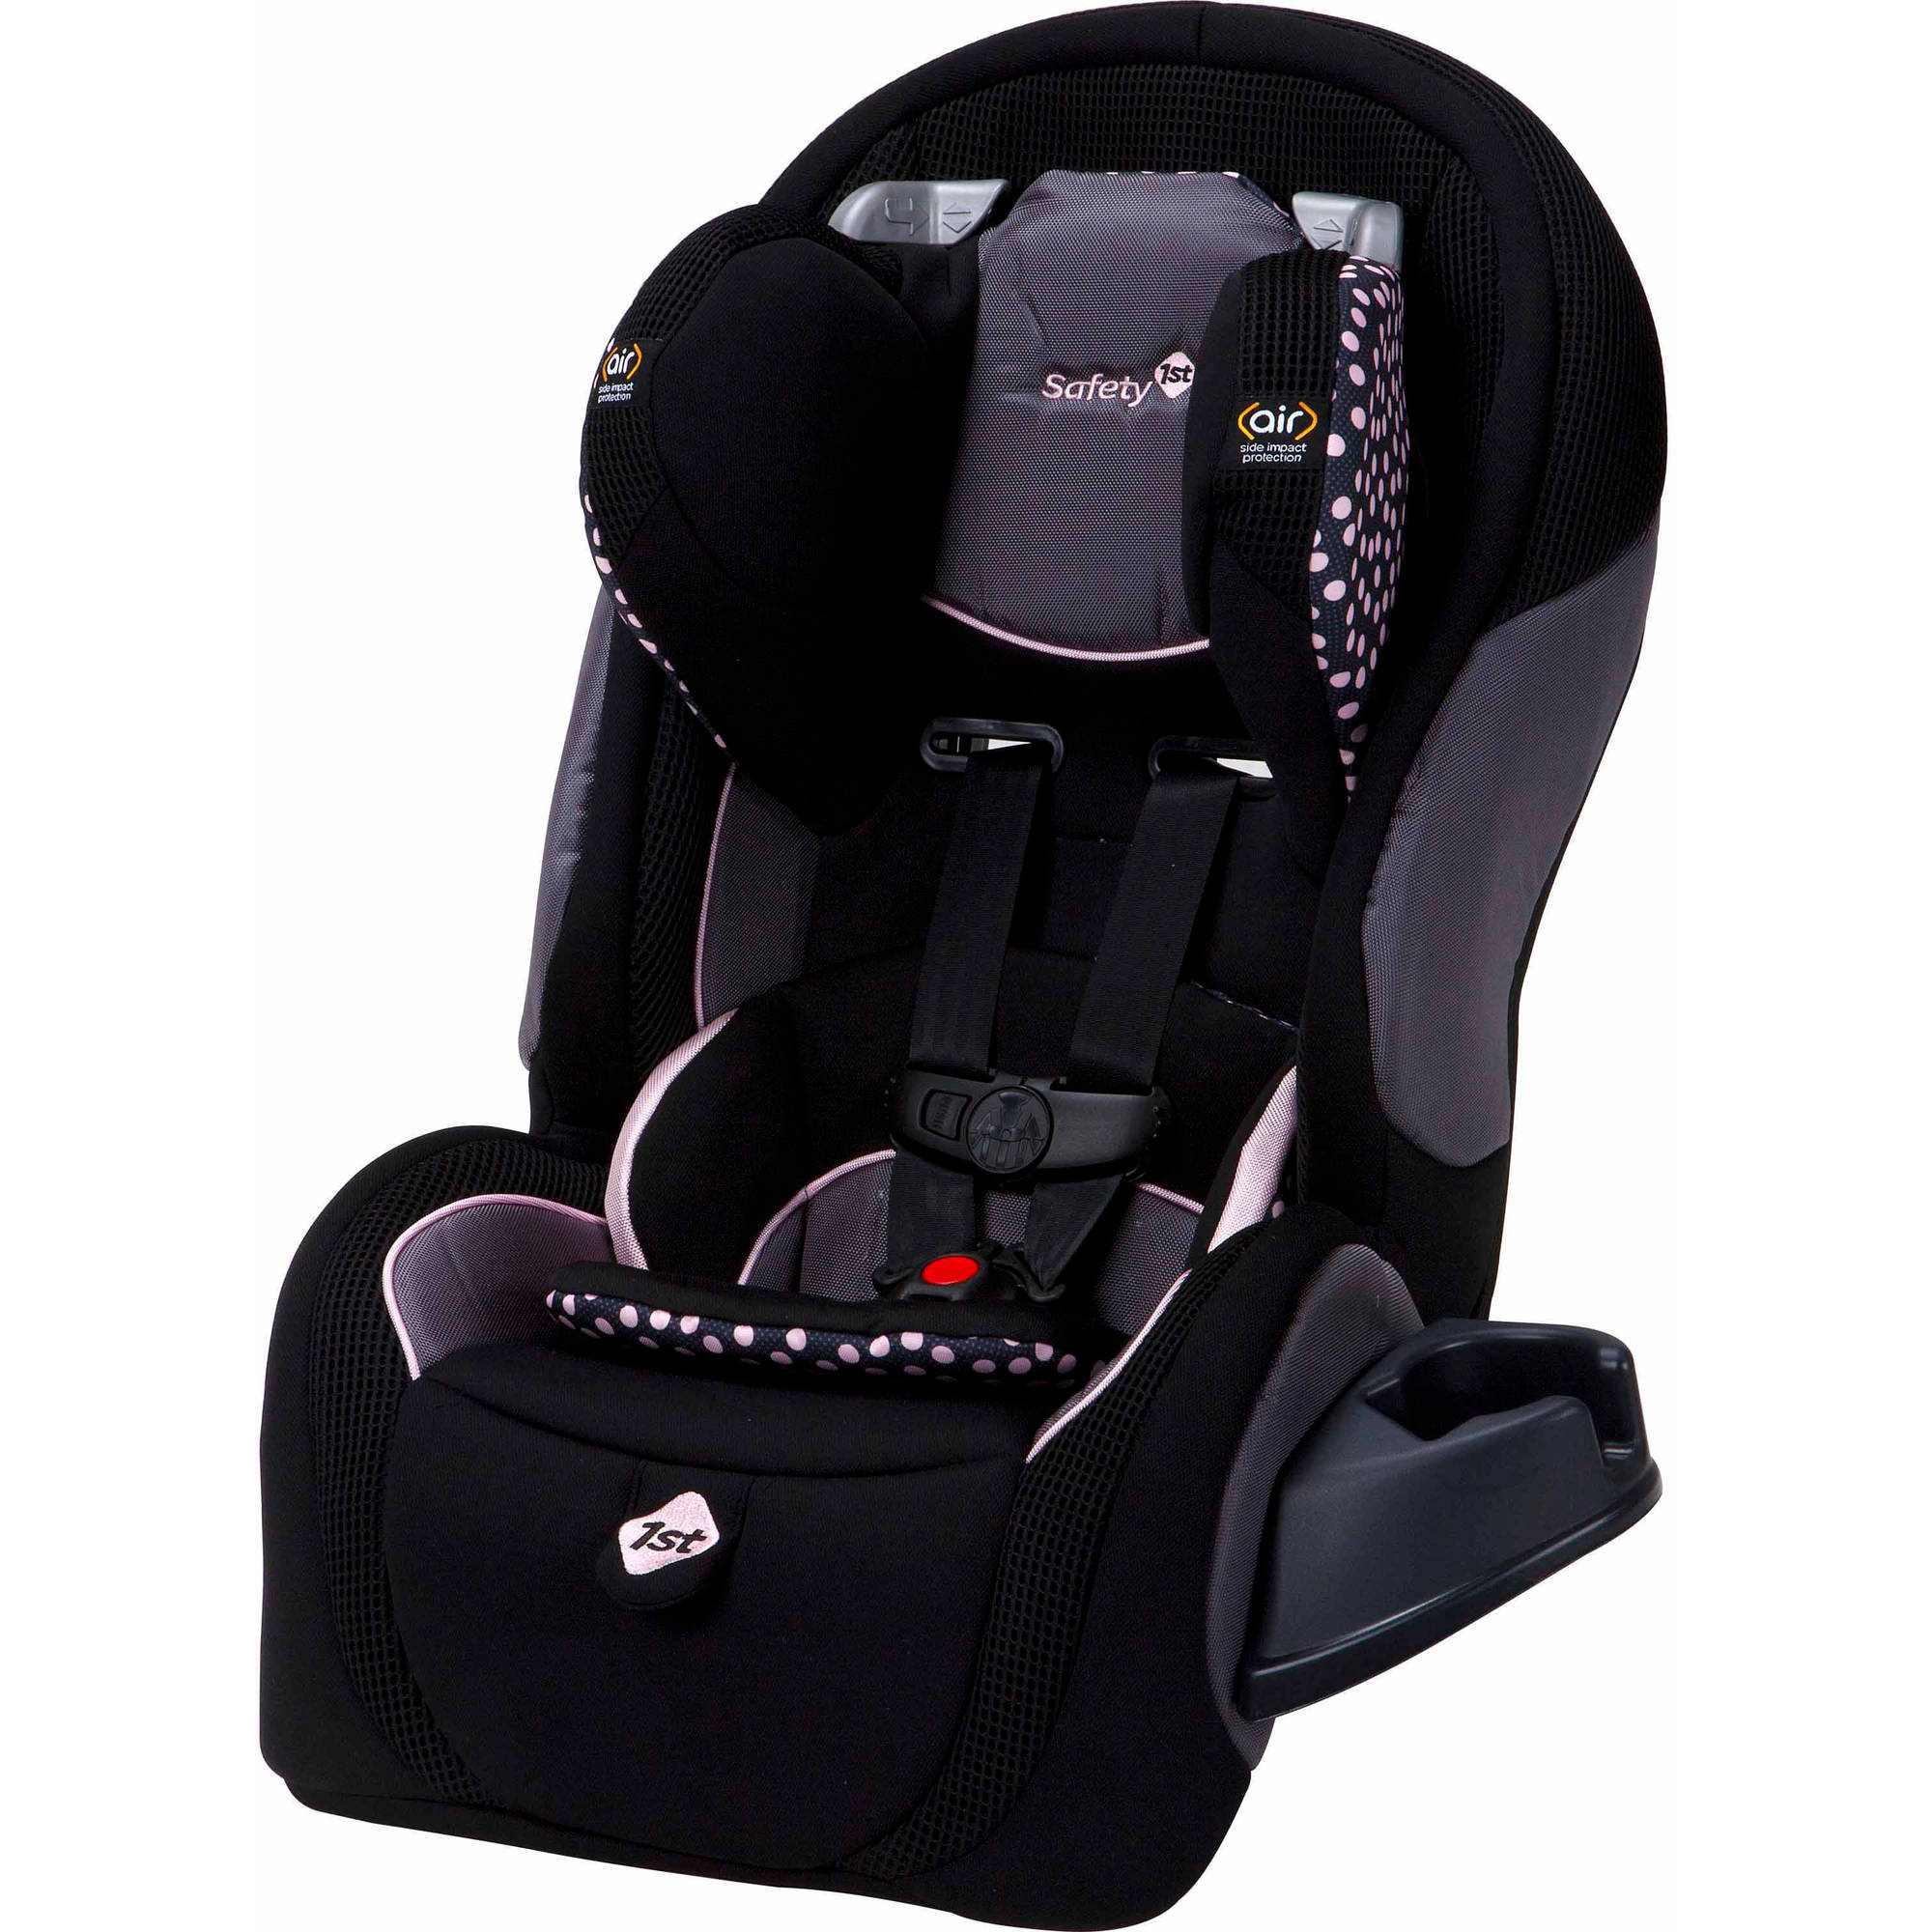 Safety First Car Seat Cover Replacement Kmishn